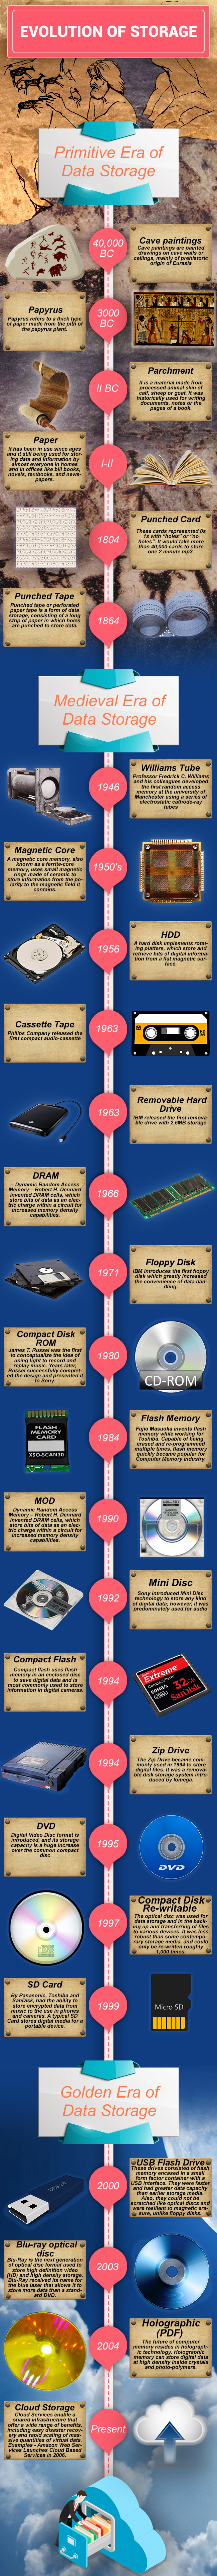 evolution-of-storage